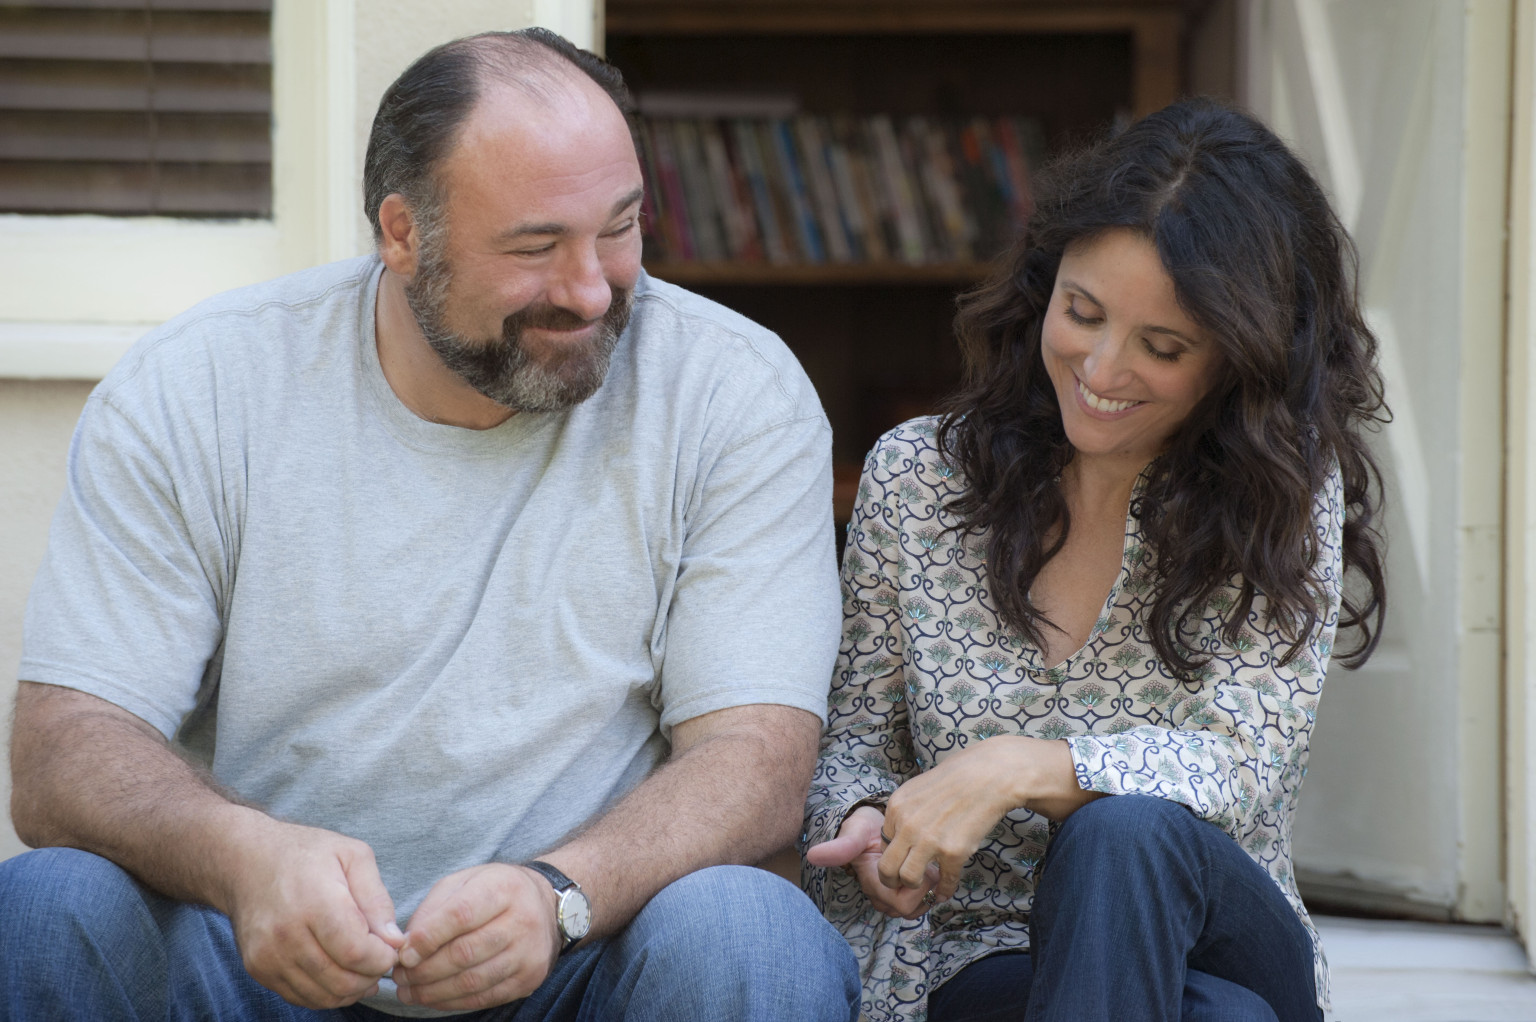 Enough Said What it's about: A masseuse (Julia Louis-Dreyfus) starts dating a sweet new guy (James Gandolfini), but discovers he's the ex-husband of her new friend and client — who's constantly complaining about him.  Why we're interested: This is one of Gandolfini's last film roles, and we're actually quite pleased it's a lightweight romantic comedy, especially since it comes from Nicole Holofcener, the director behind indie gems Please Give and Friends With Money. When it opens: Sept. 18 Watch the trailer for Enough Said.